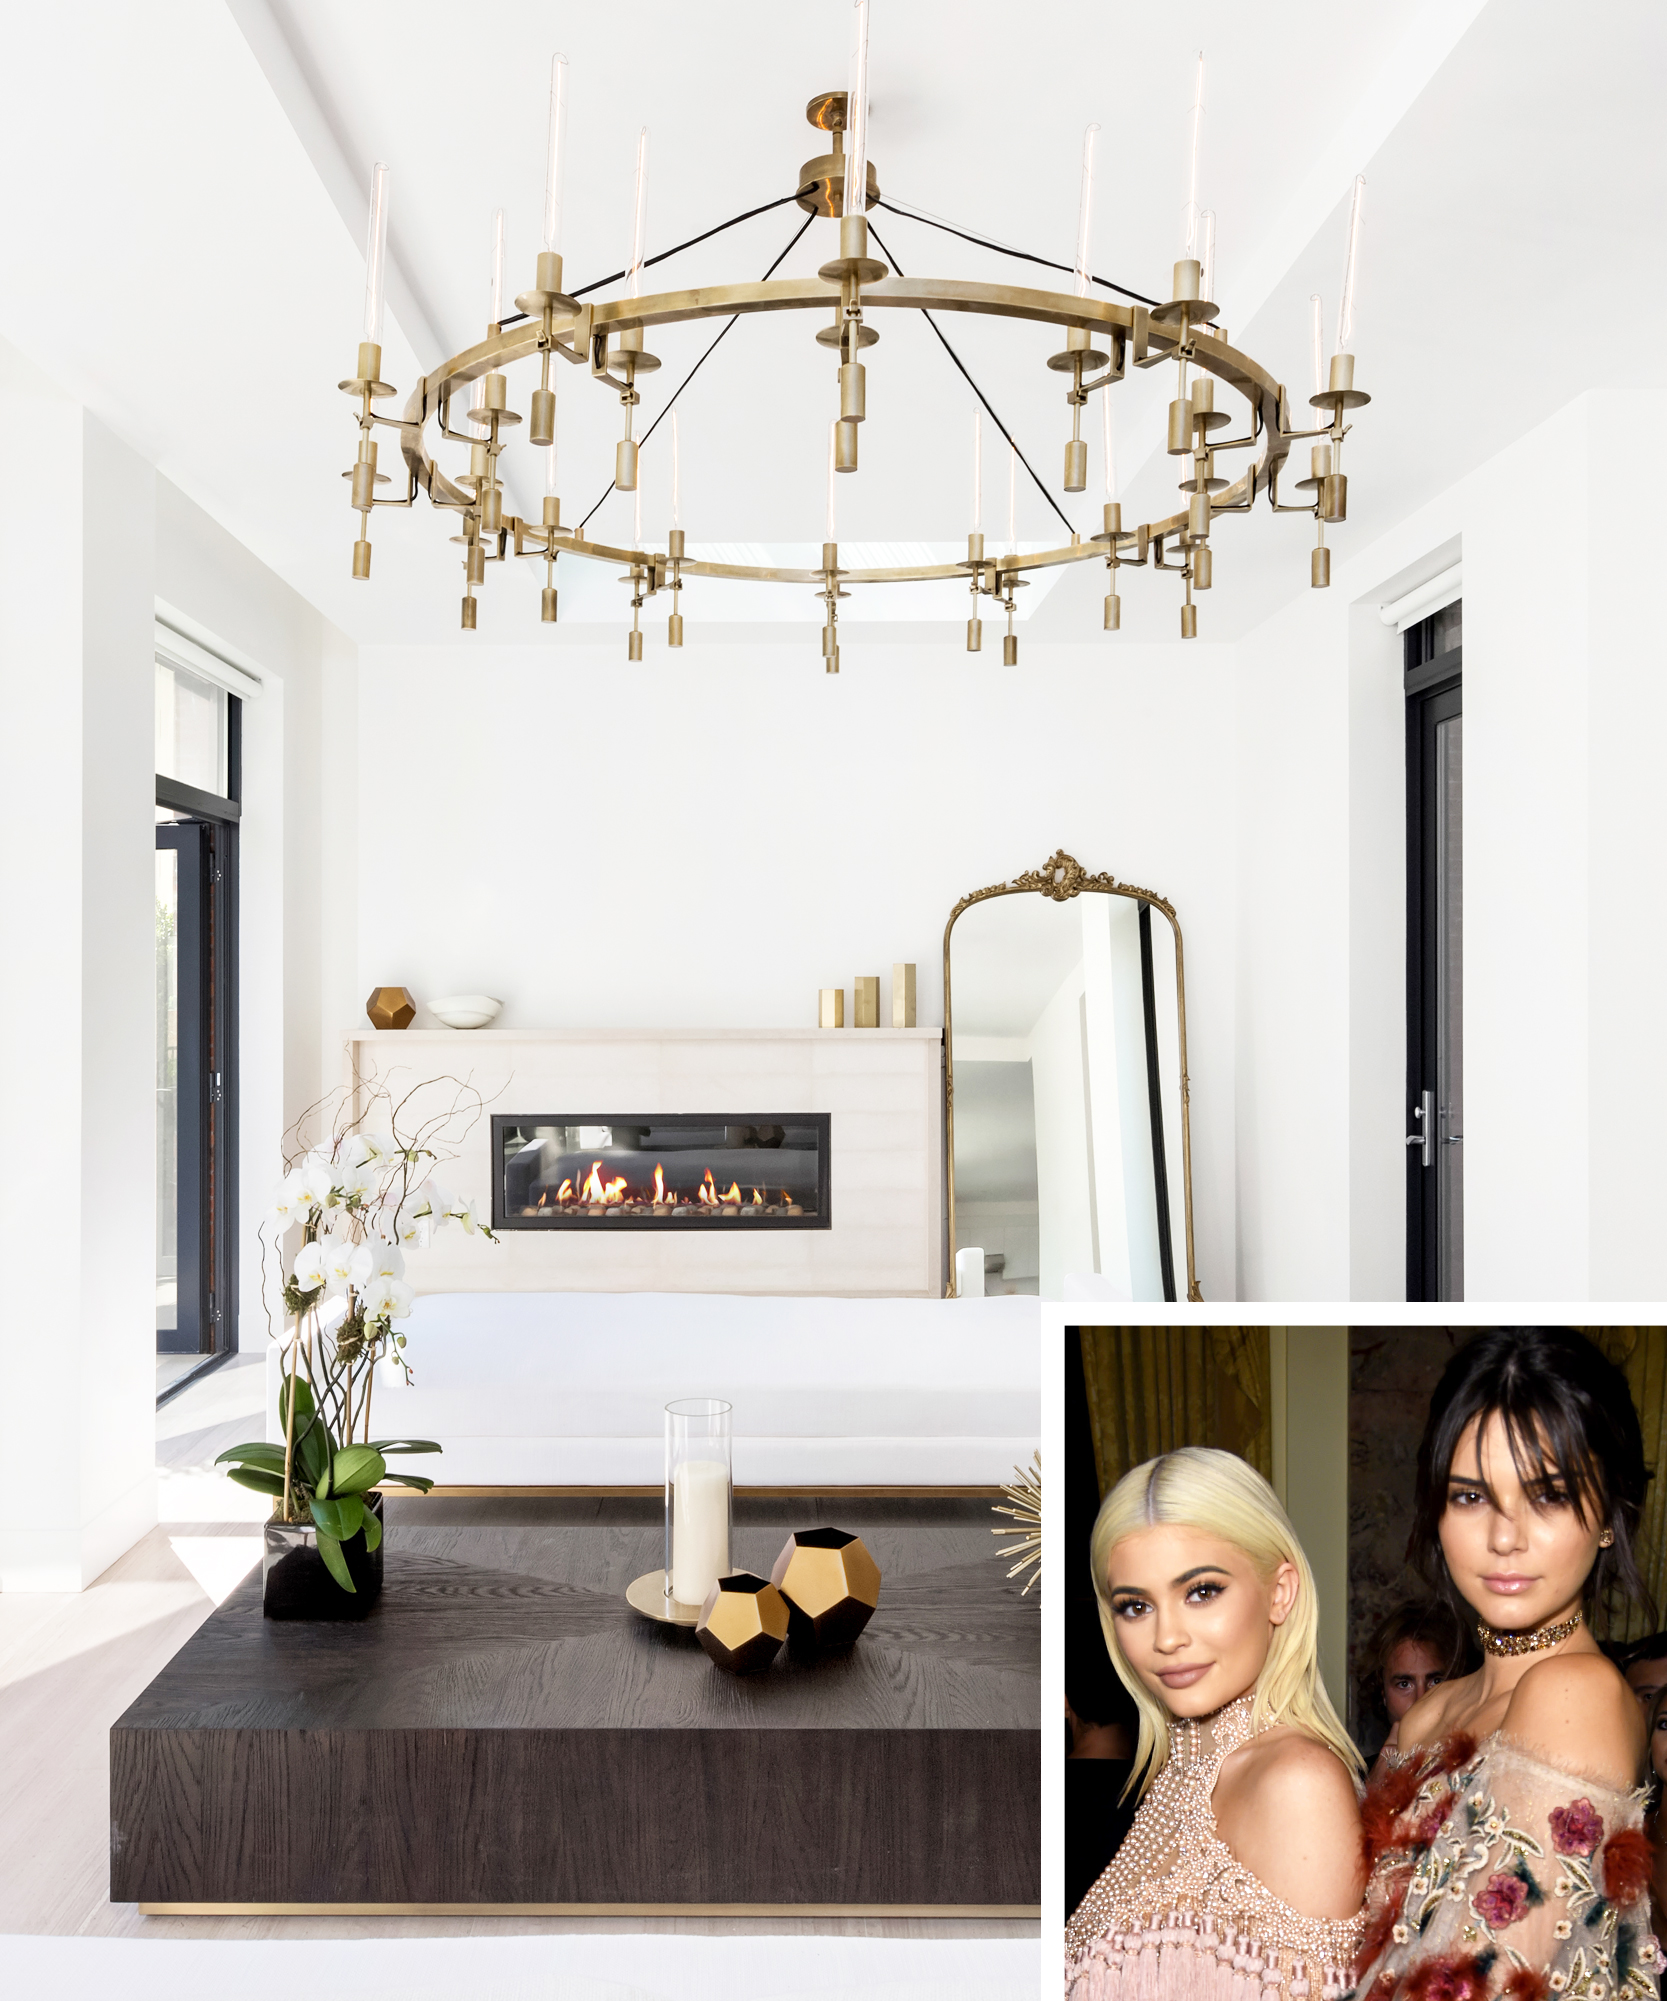 Free Apartment Listing Sites: Step Inside The $26.5 Million Apartment Kendall And Kylie